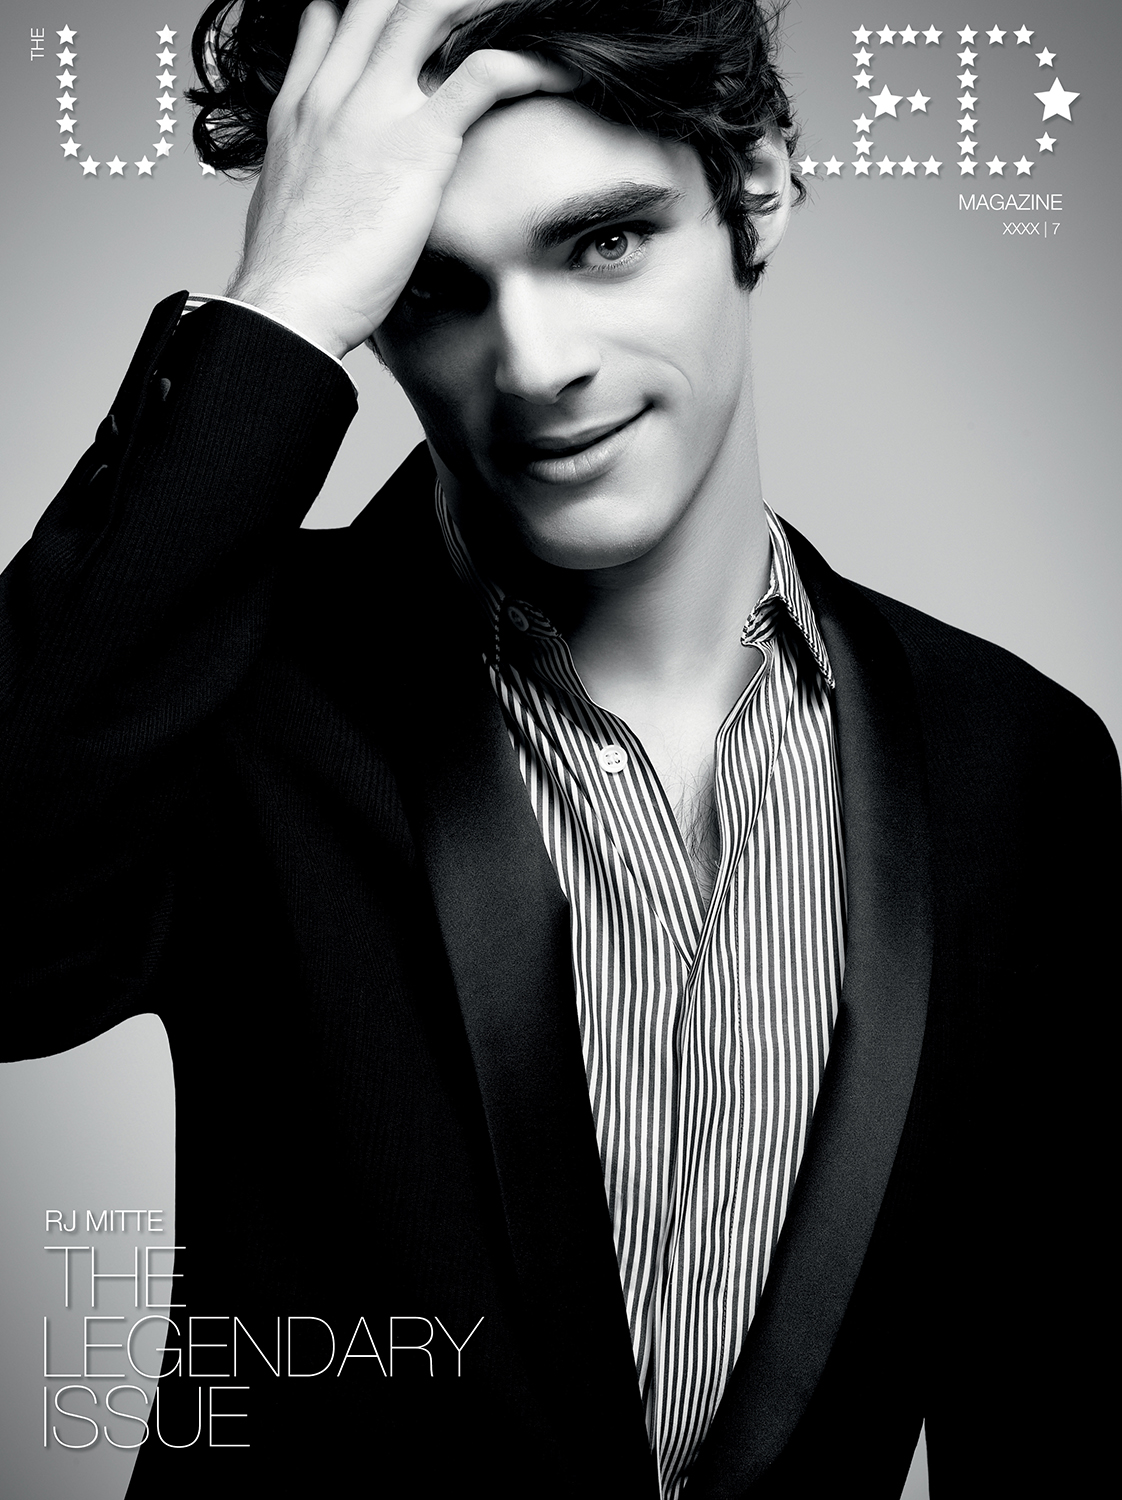 The-Untitled-Magazine-Issue-7-low-res-RJ-Mitte.jpg